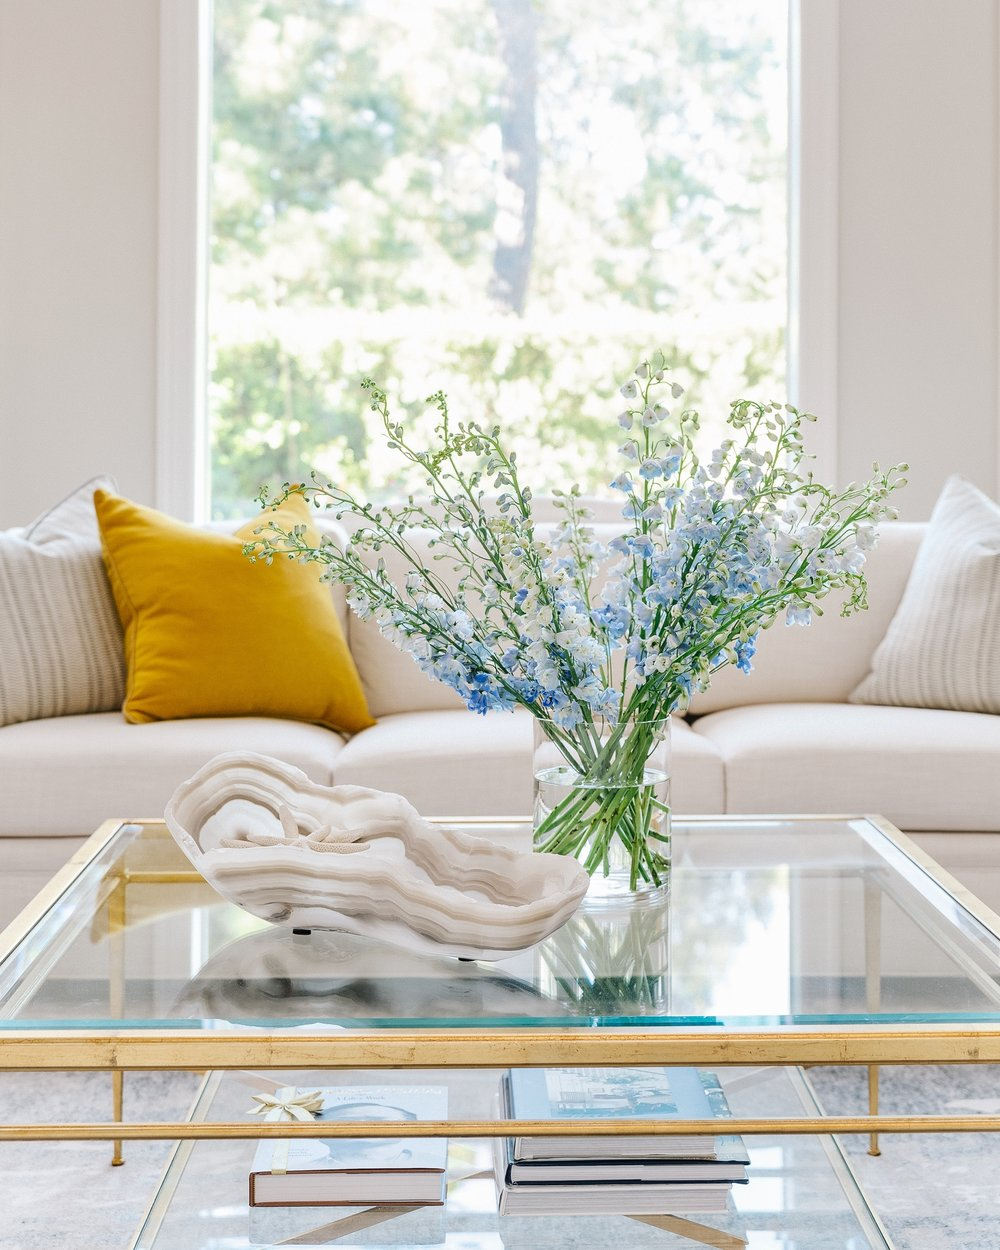 White sofa with gilded, glass top coffee table, yellow pillow, onyx bowl | Designer: Carla Aston, Contractor: Shaun Bain, Photographer: Colleen Scott #living room #livingroomideas #whitesofa #yellowpillow #coffeetable #coffeetablestyling